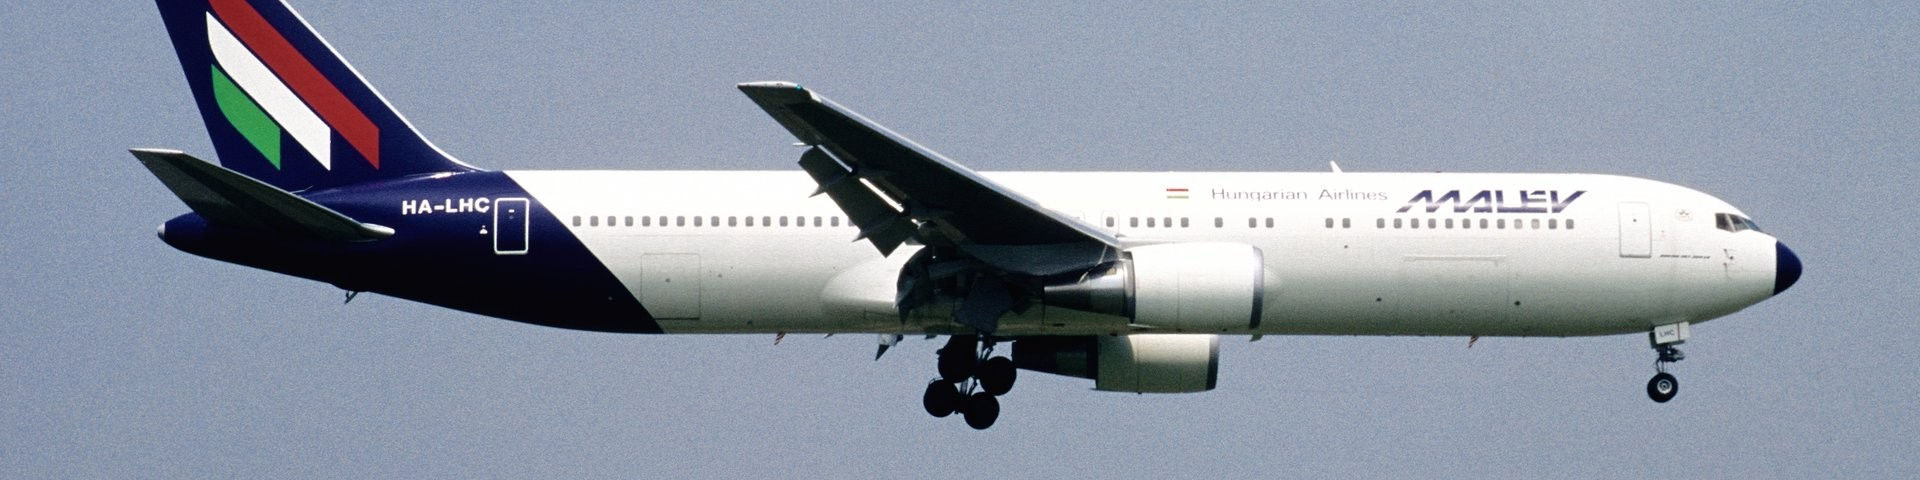 Boeing 767 Malev Hungarian Airlines